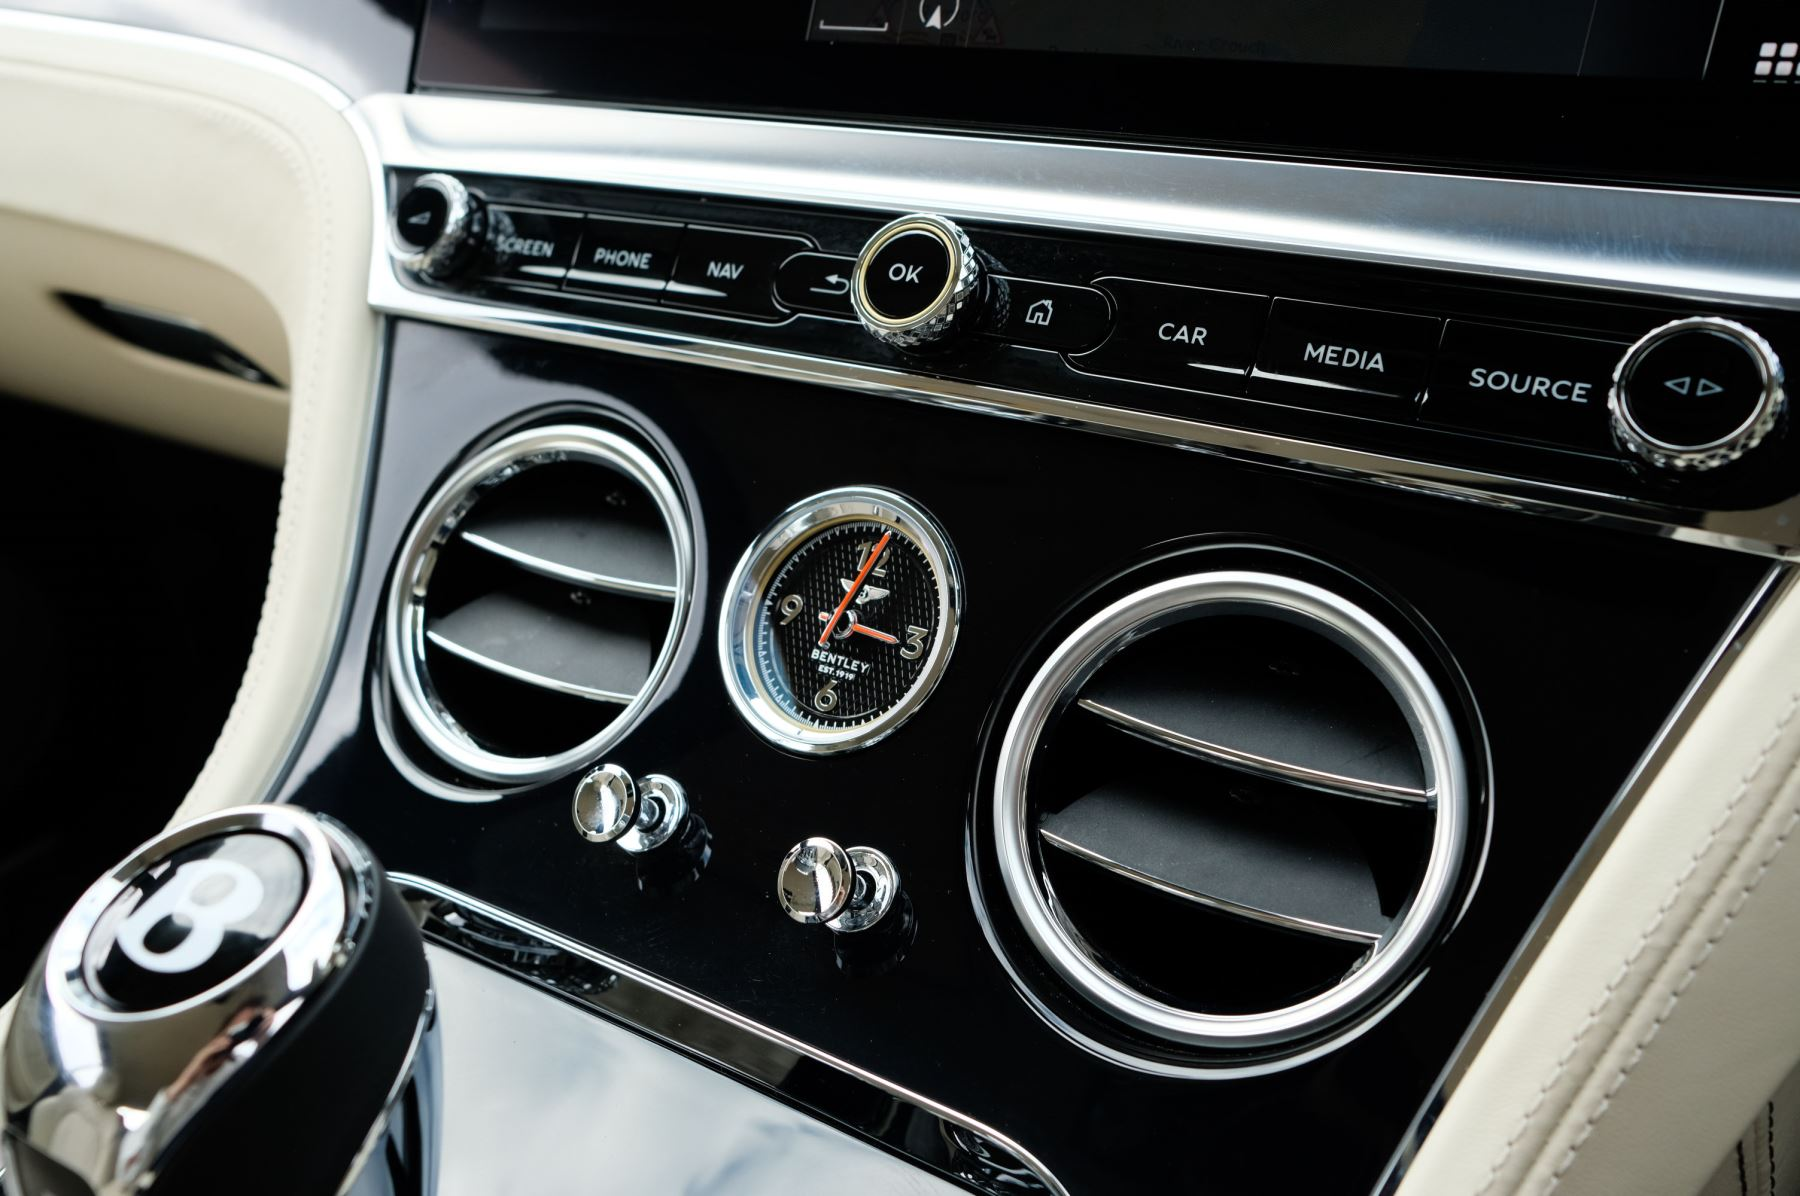 Bentley Continental GT 6.0 W12 1st Edition - Comfort Seating - Touring Specification image 28